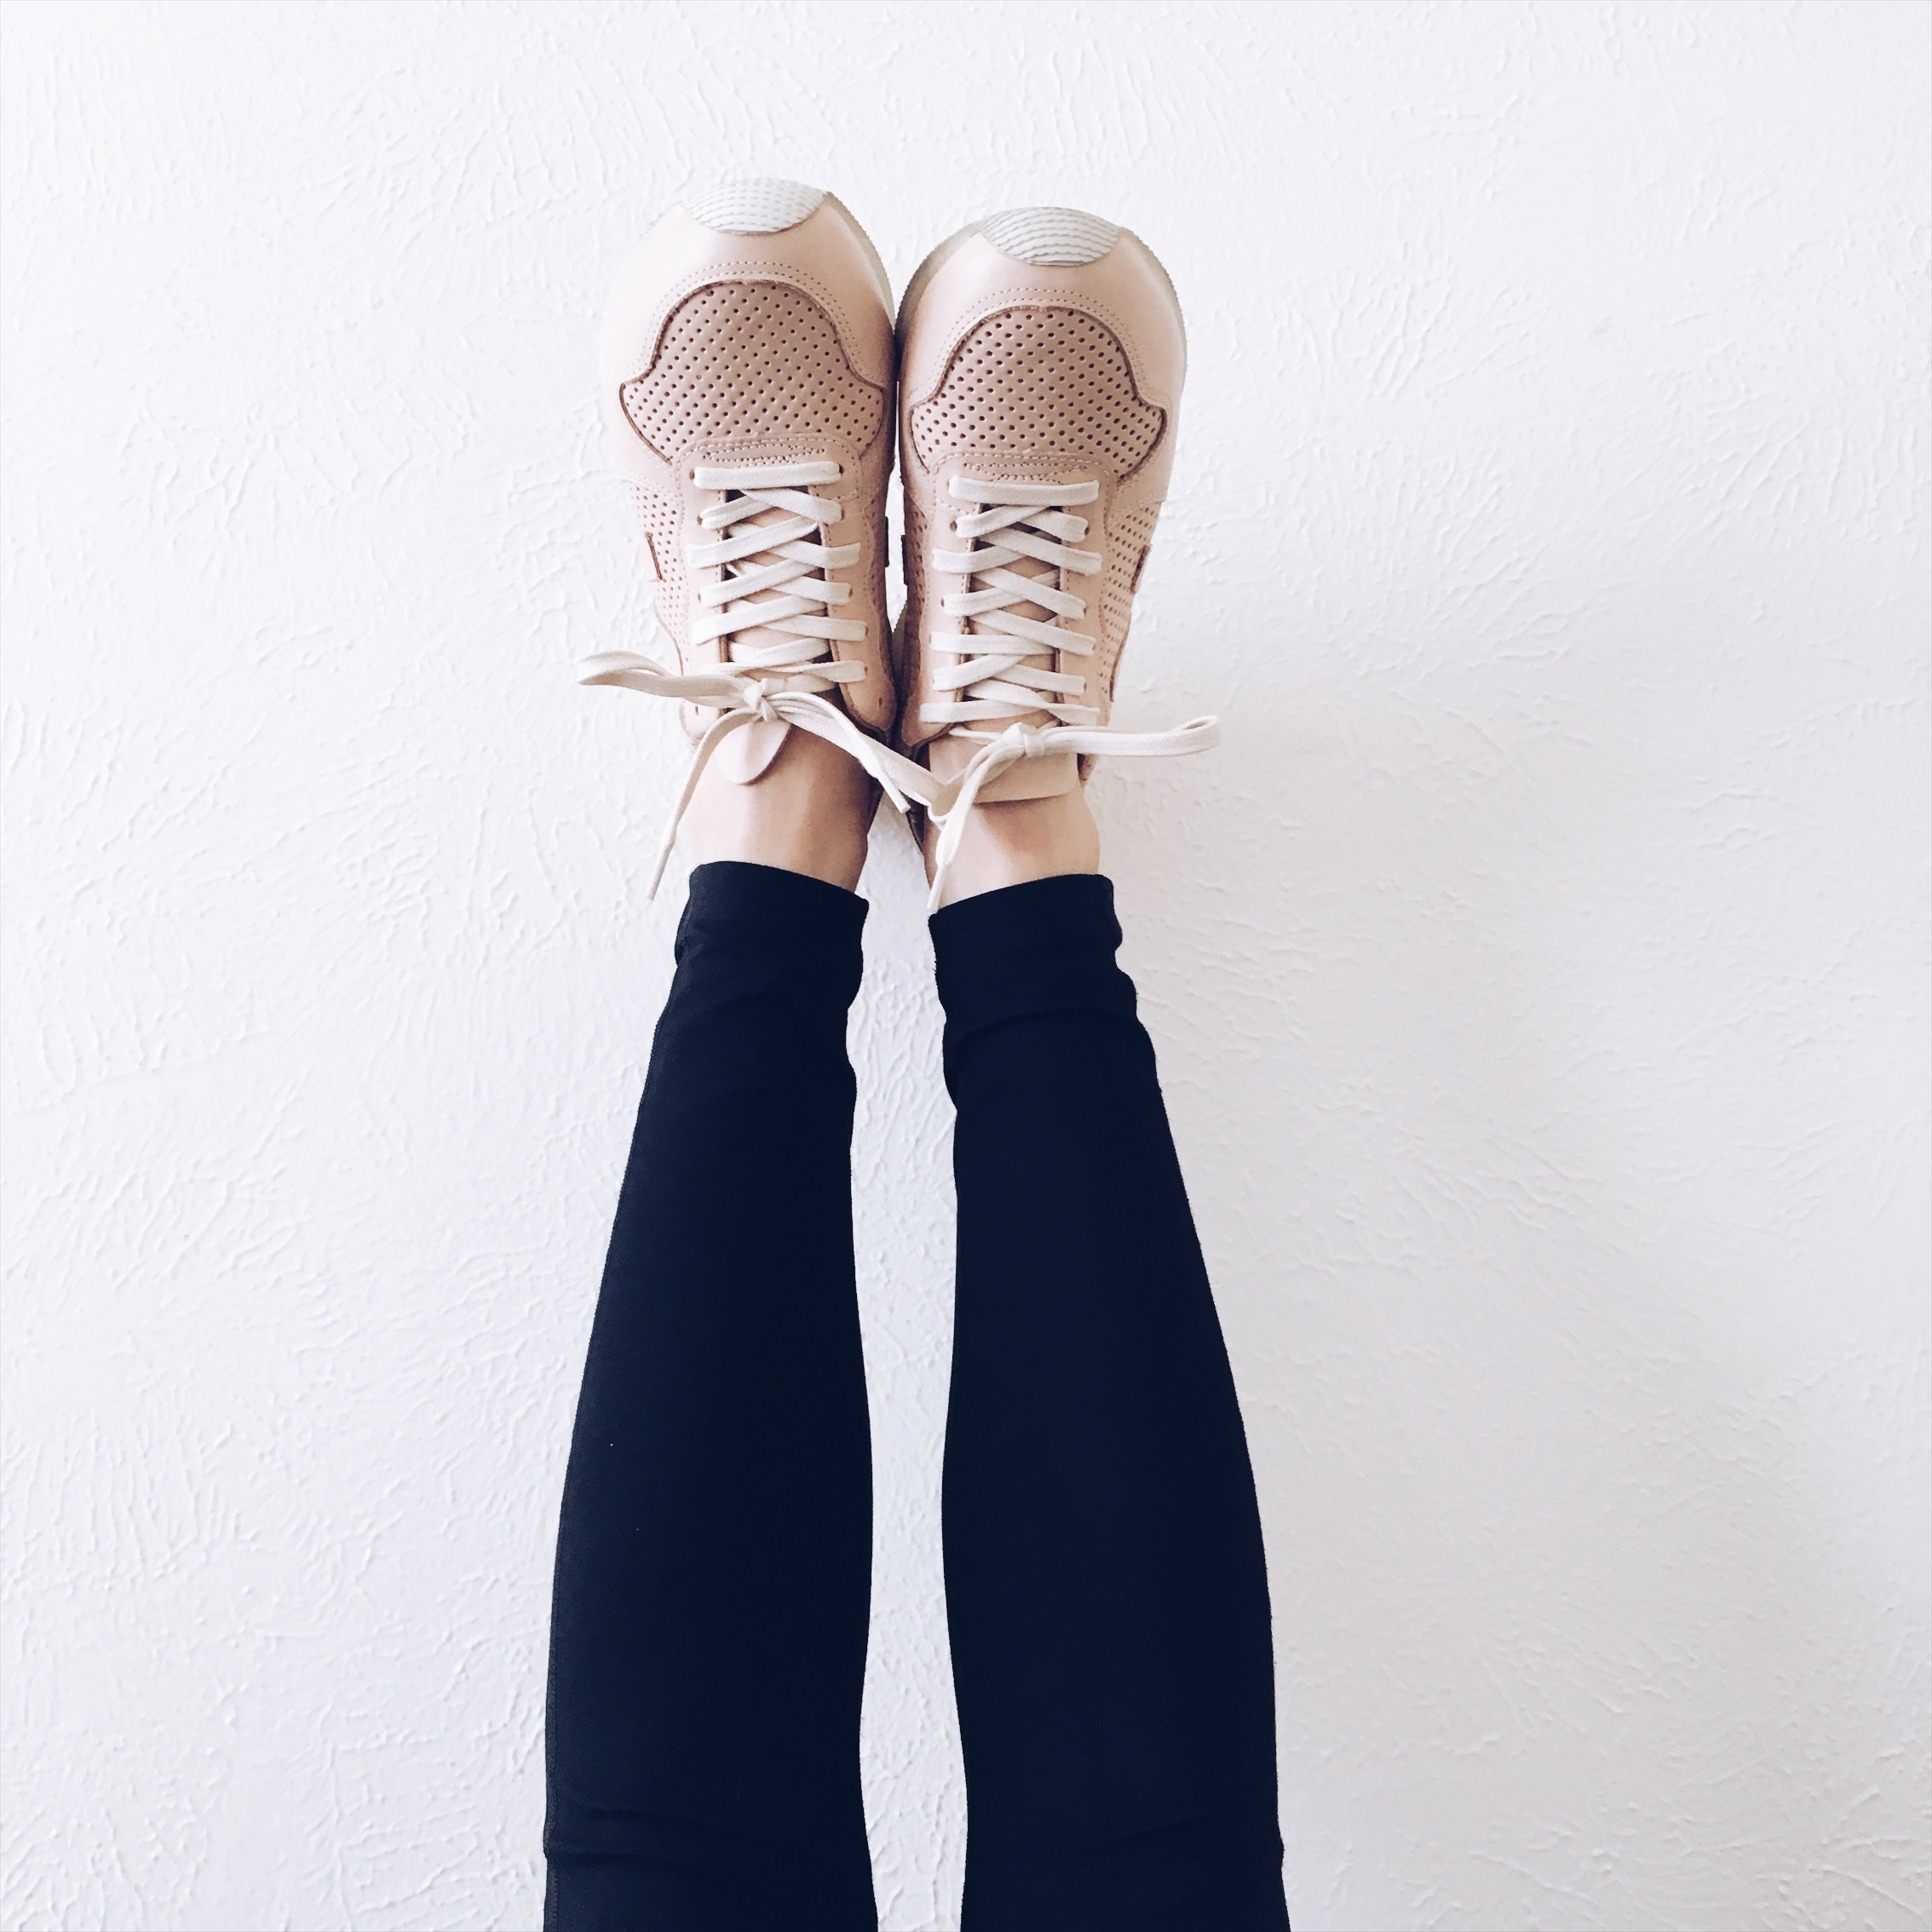 Veja shoes and Girlfriend Collective leggings